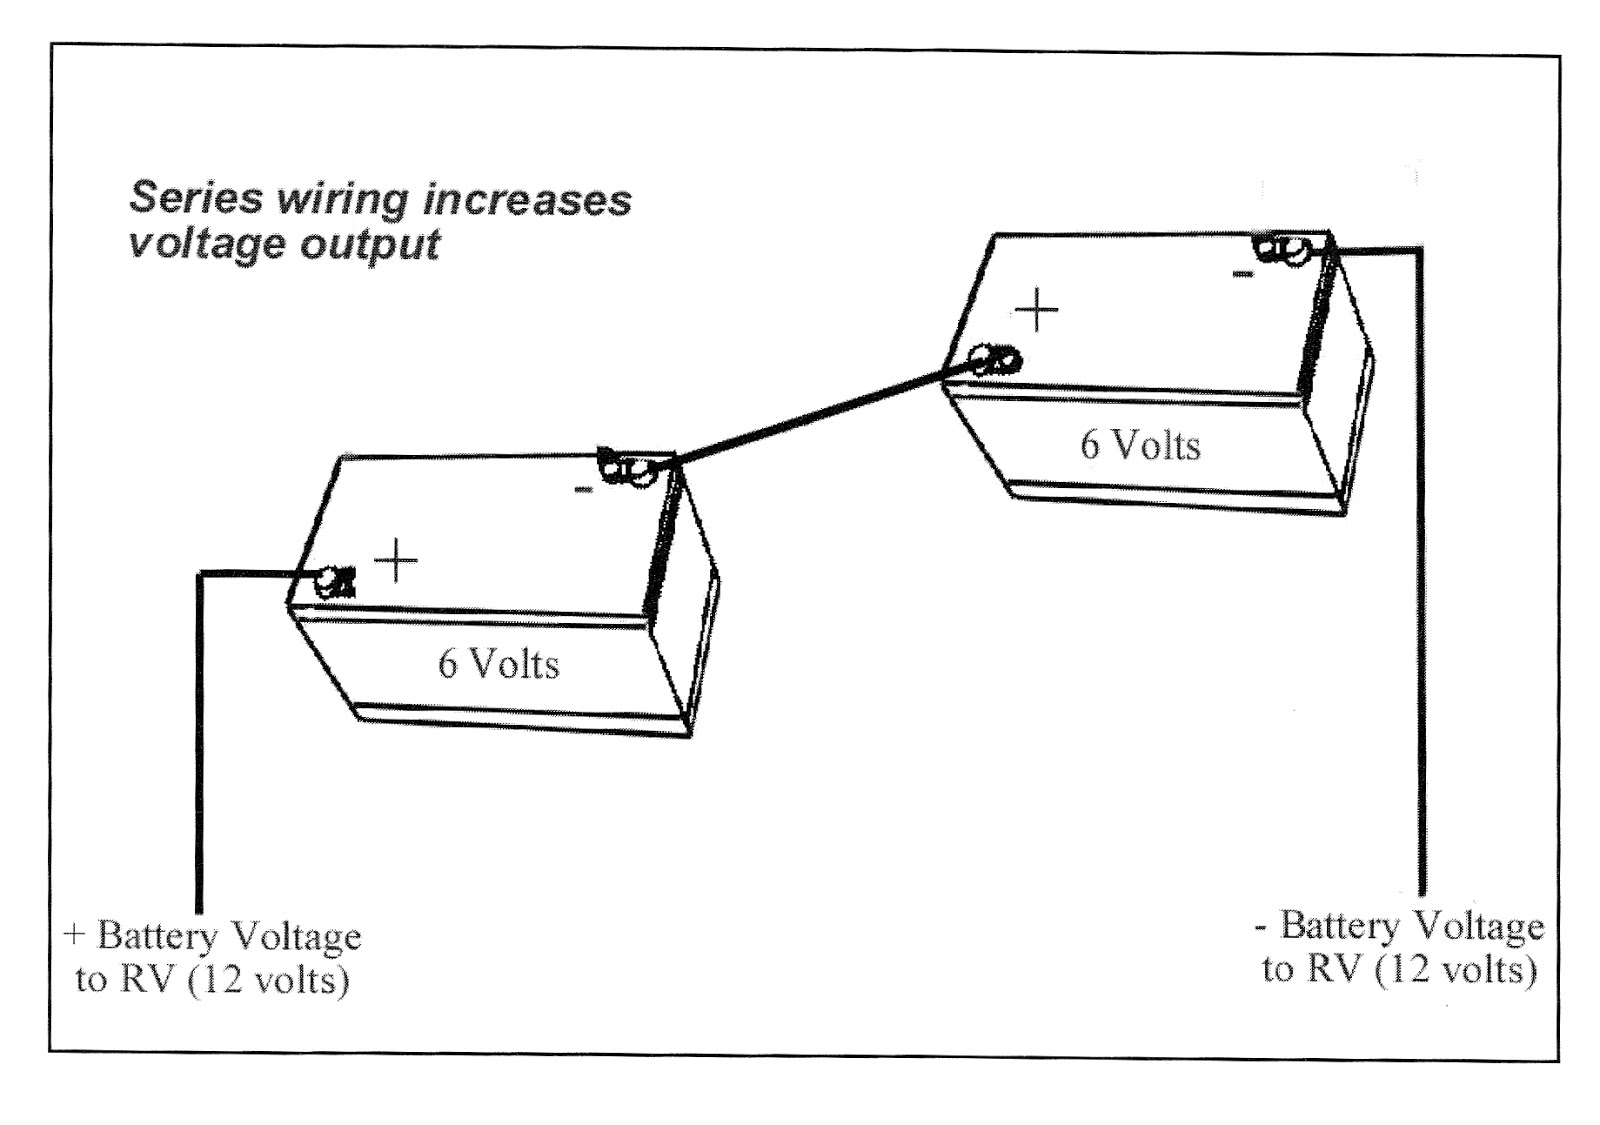 Series Wiring Diagram : Led light v parallel wiring free engine image for